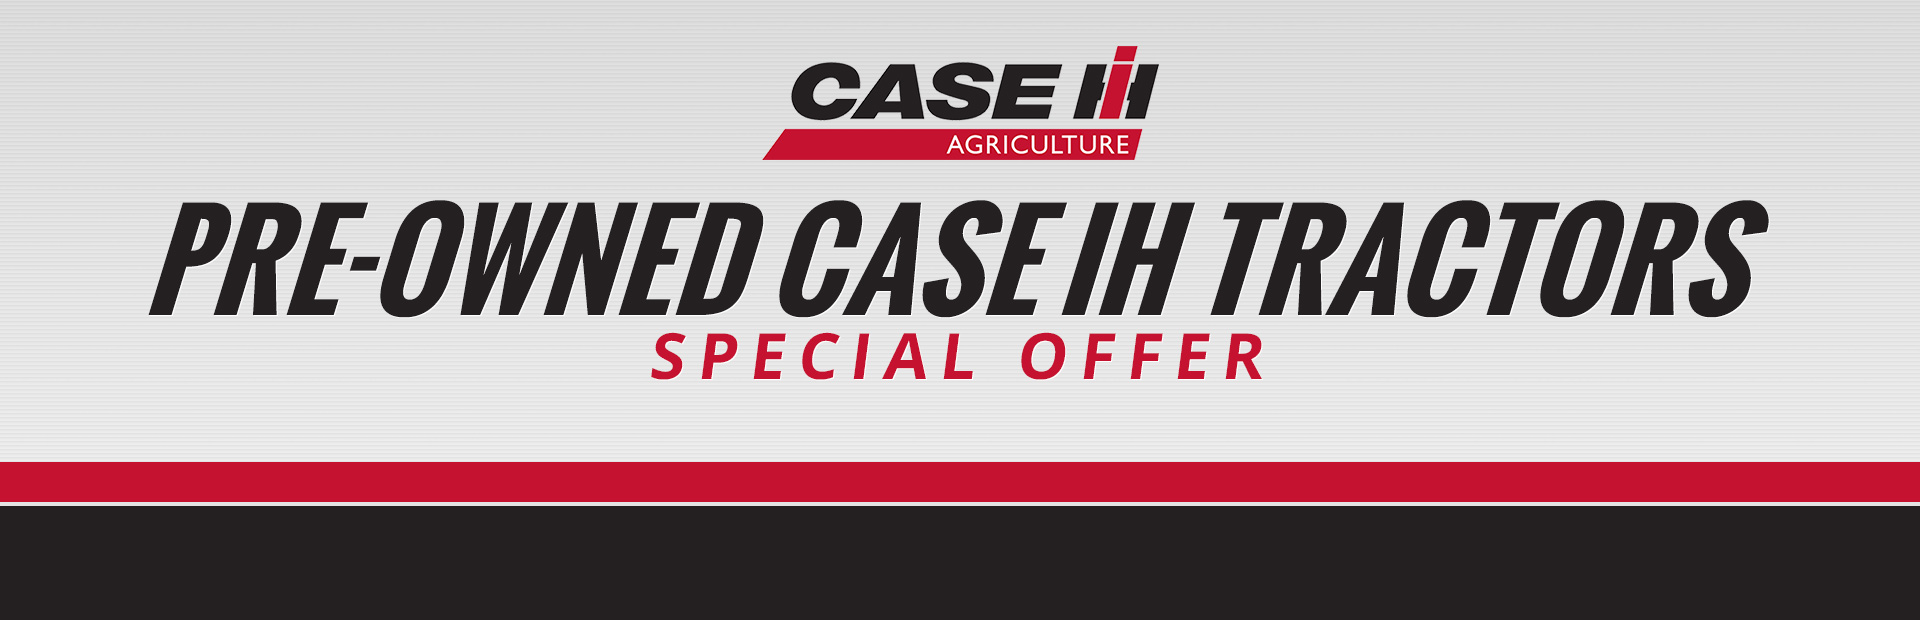 Case IH: Pre-Owned Case IH Tractors Special Offer